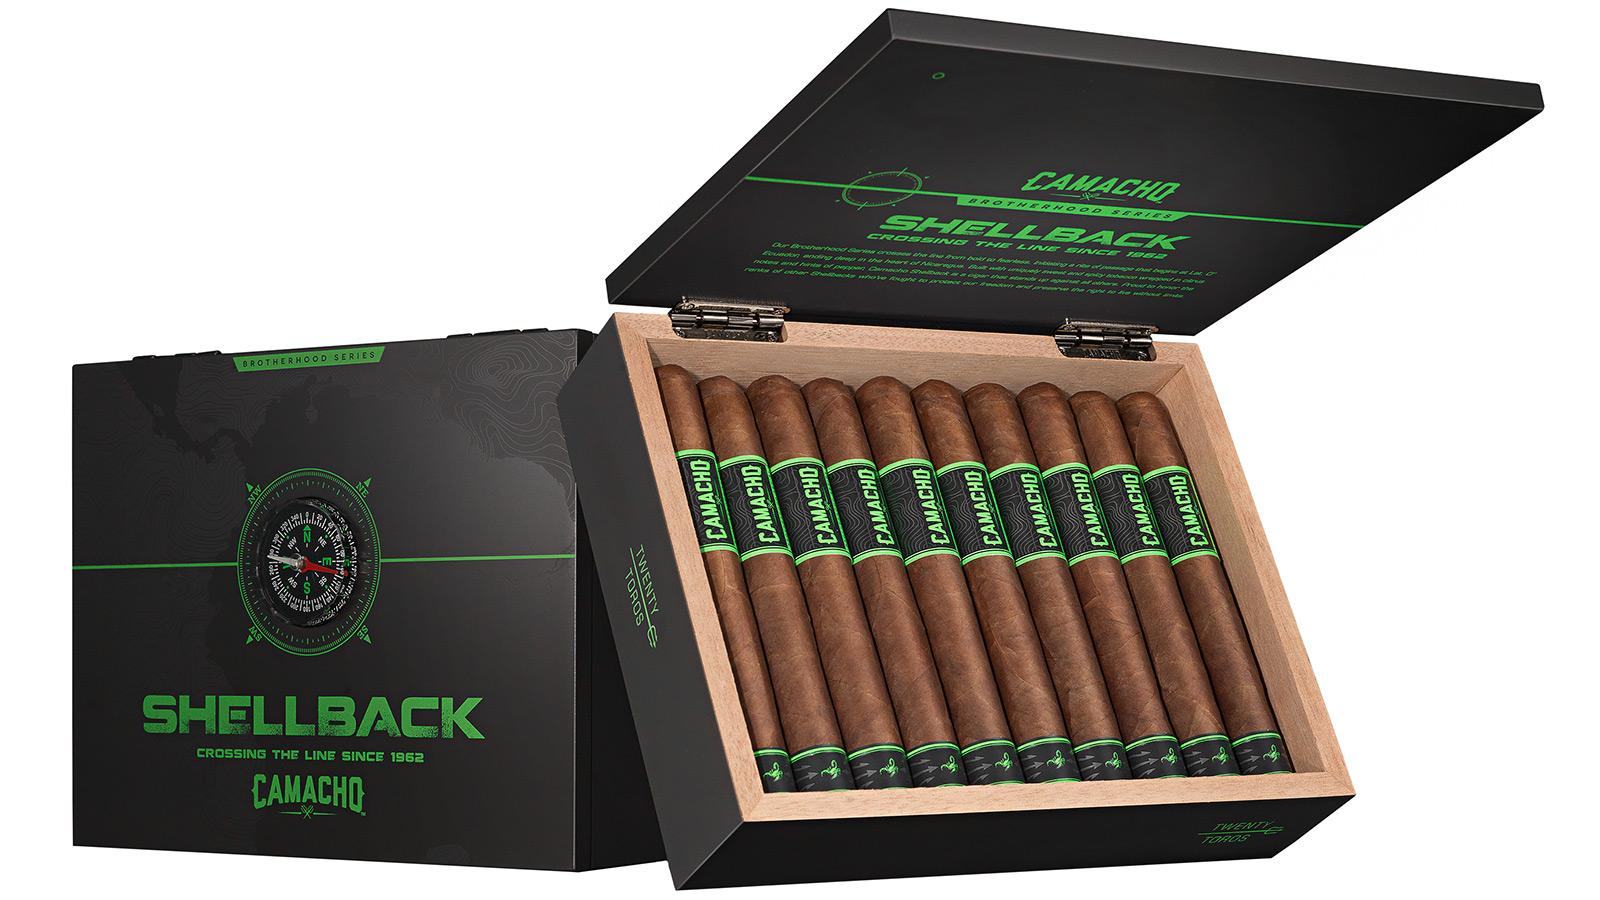 Maritime-Themed Camacho Sets Sail For Retailers This Week